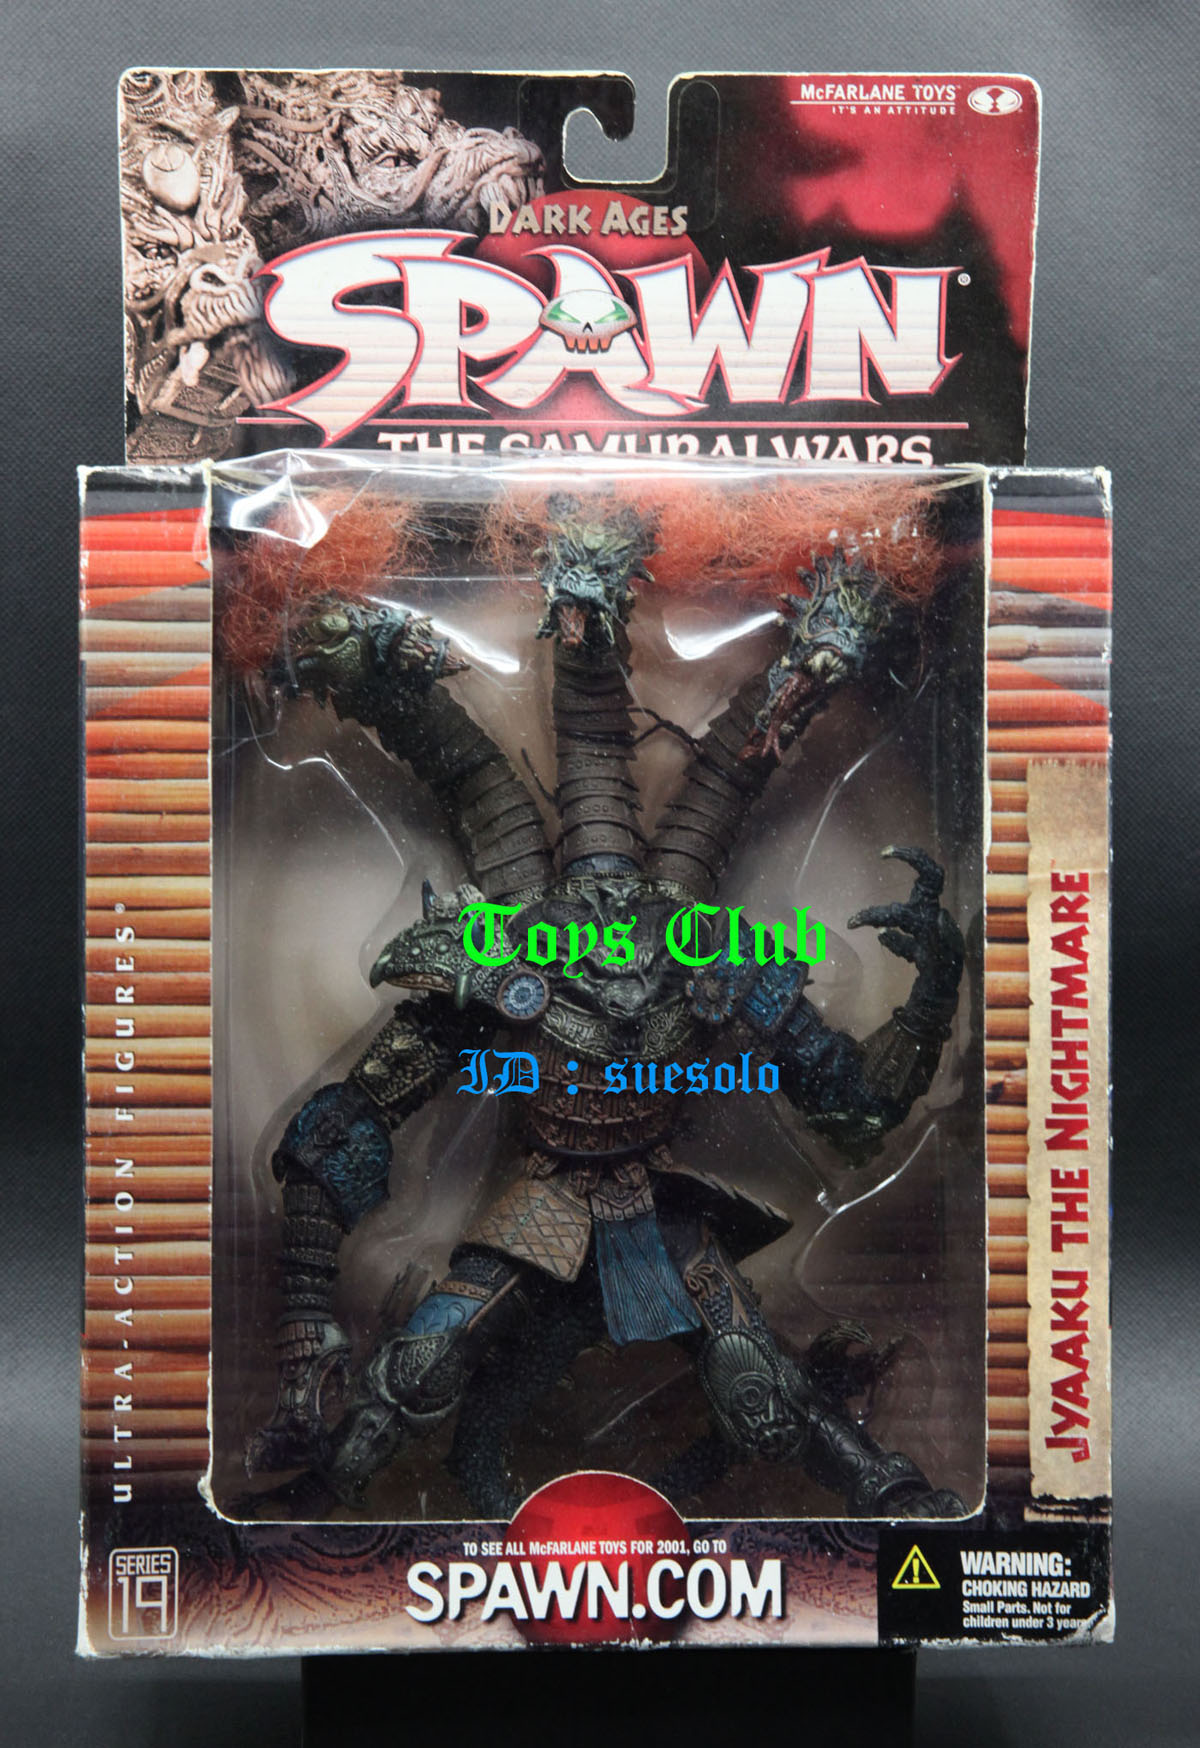 US $59 99 |Estartek McFarlane 7 Inch SPAWN 19 TH Three Head Dragon Jyaaku  Collection Action Figure-in Action & Toy Figures from Toys & Hobbies on